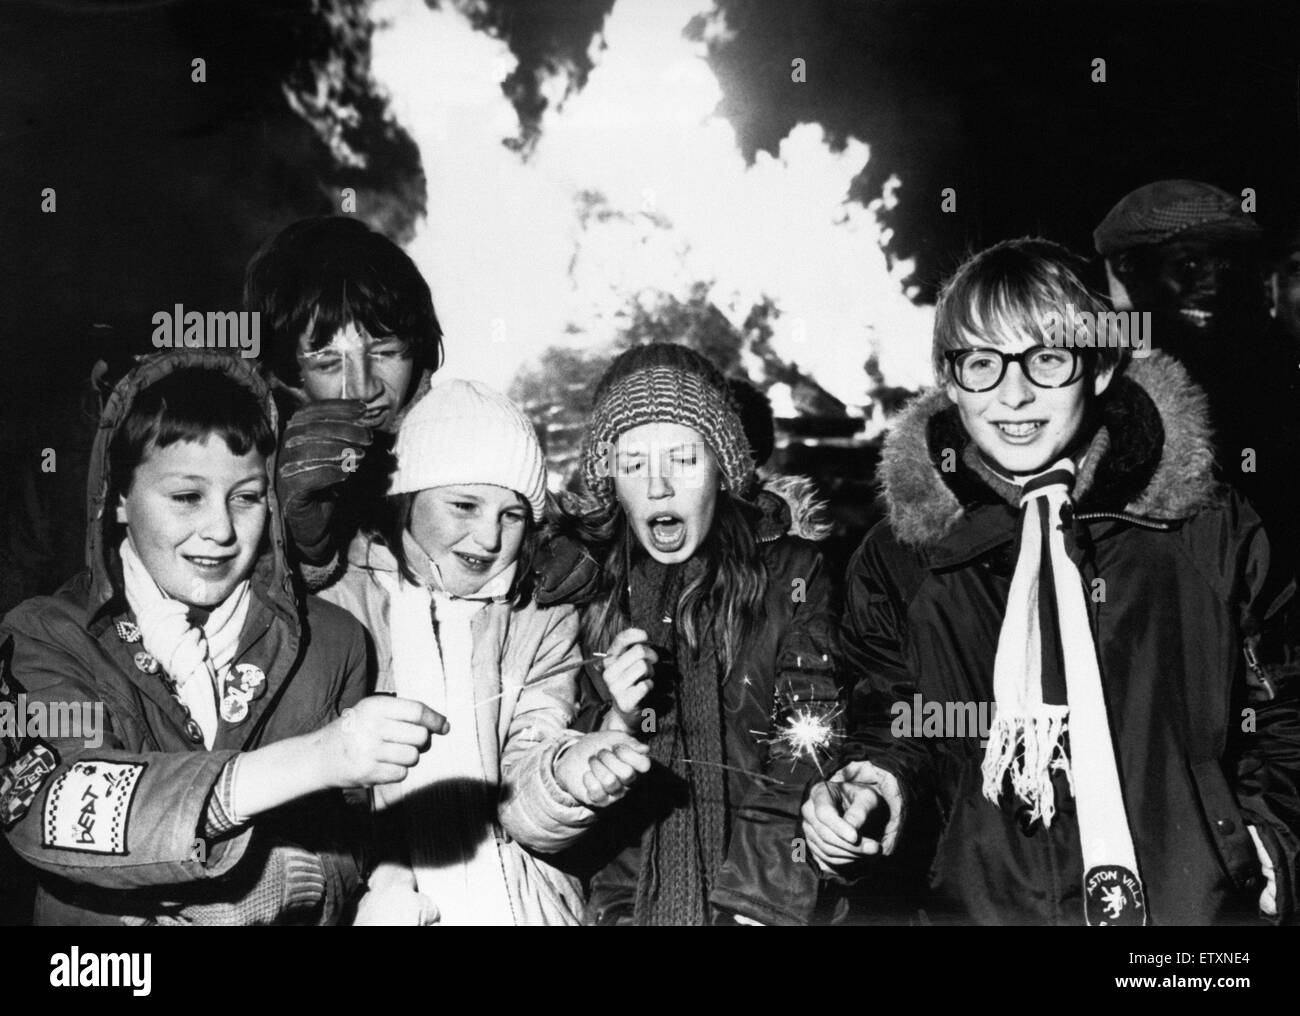 Bonfire night at Victoria Park, Smethwick, for (from left to right) Matthew Jones, Chris Davies, Jennine Jones, - Stock Image